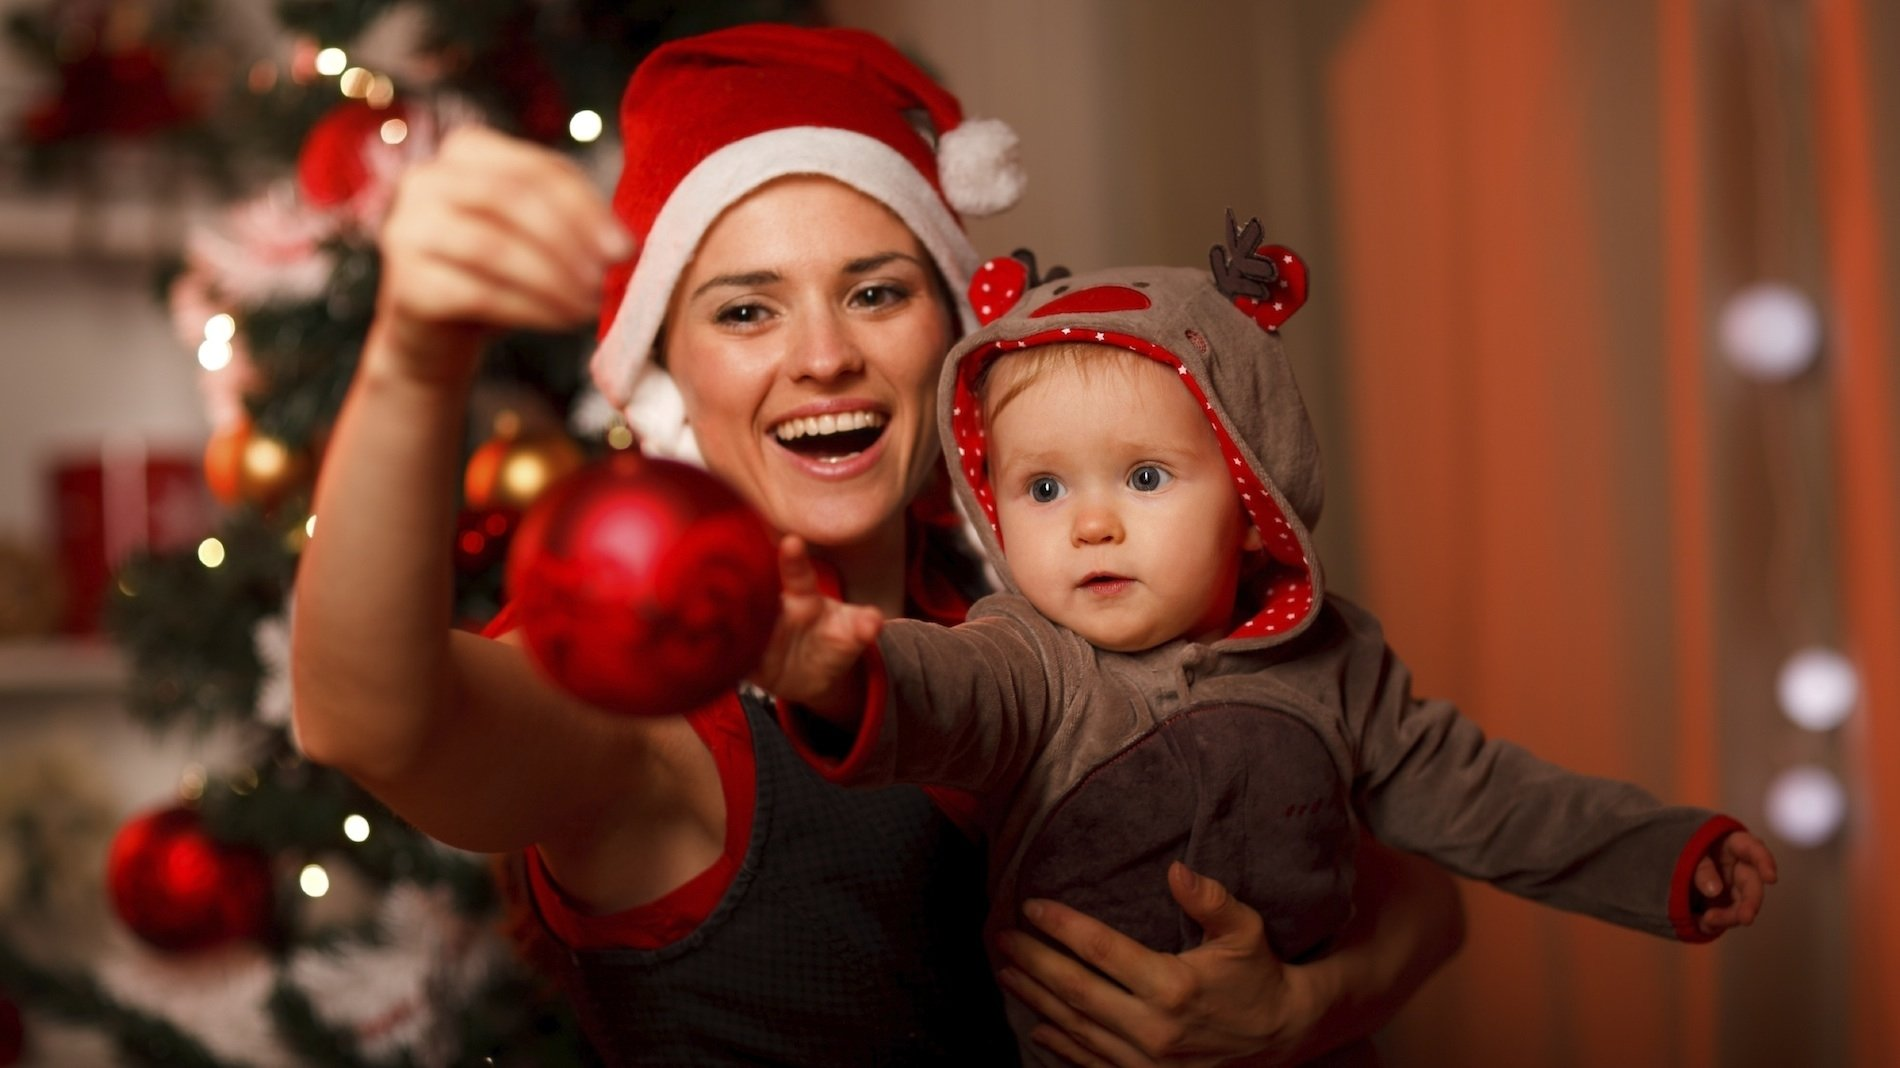 10 Trendy Family Christmas Photo Ideas With Baby how to make babys first christmas special blog lullaby nanny share